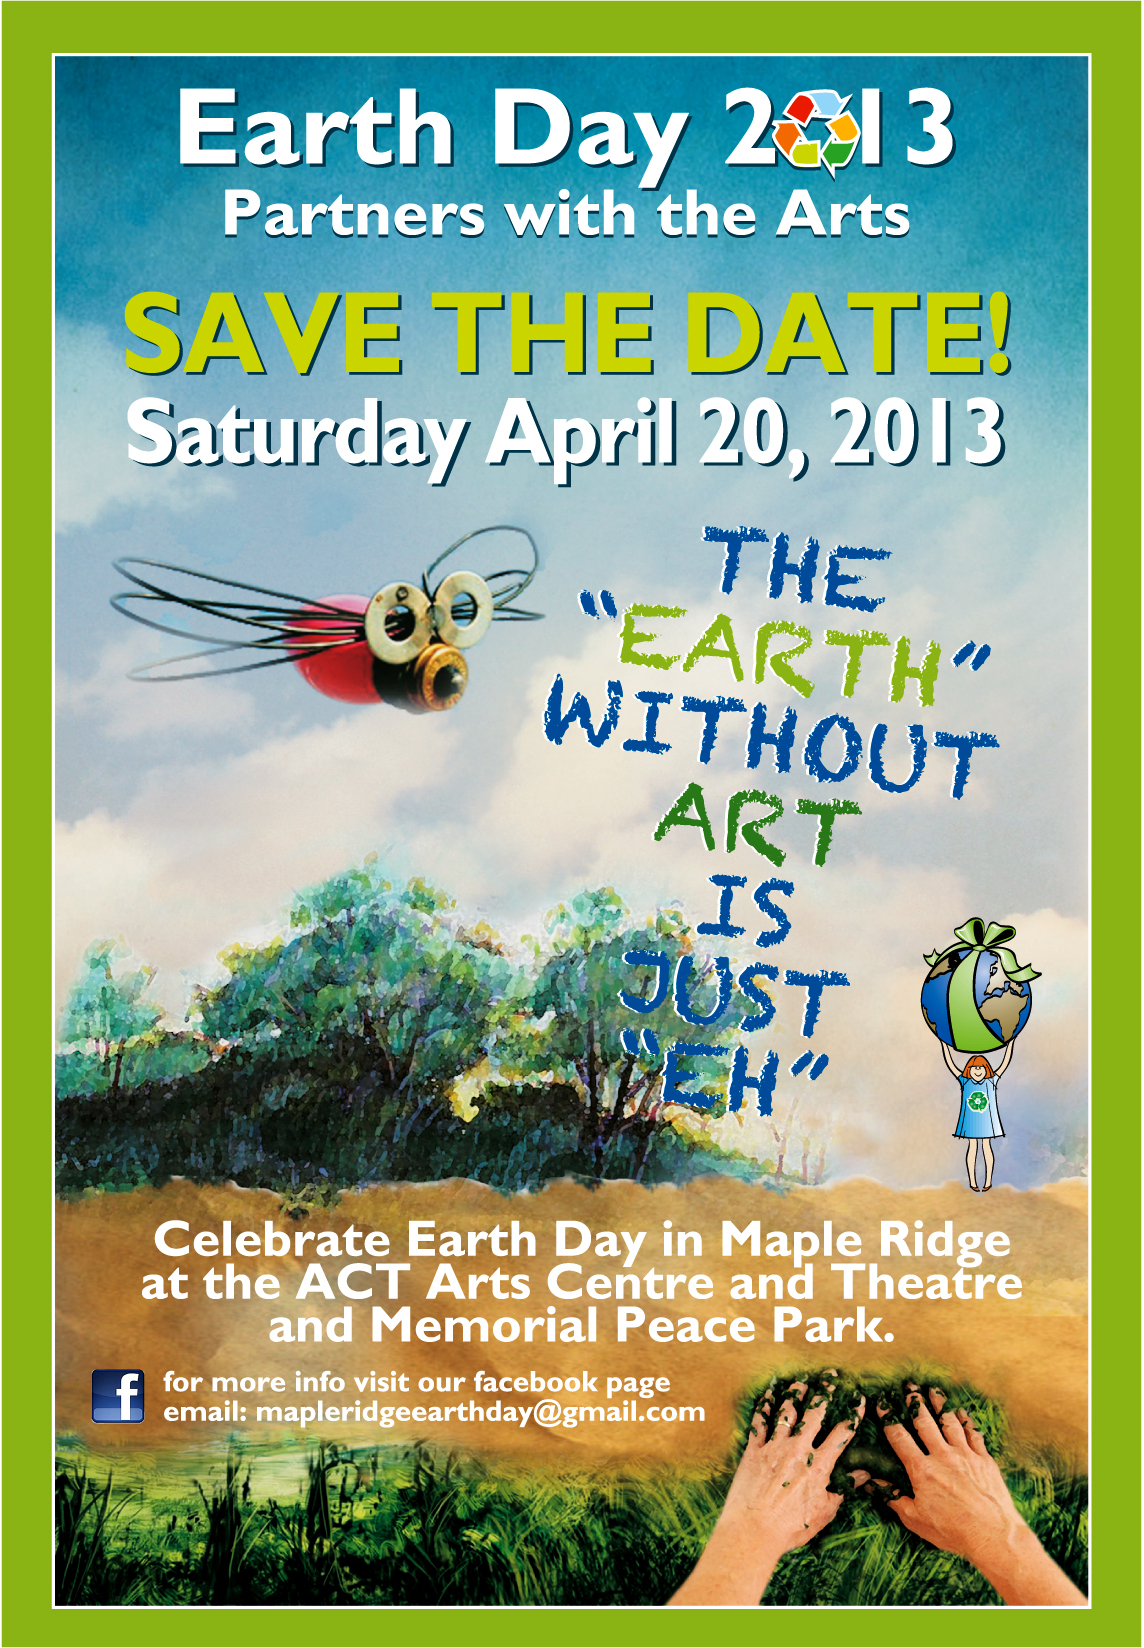 Earth Day 2013 Save The Date Flyer